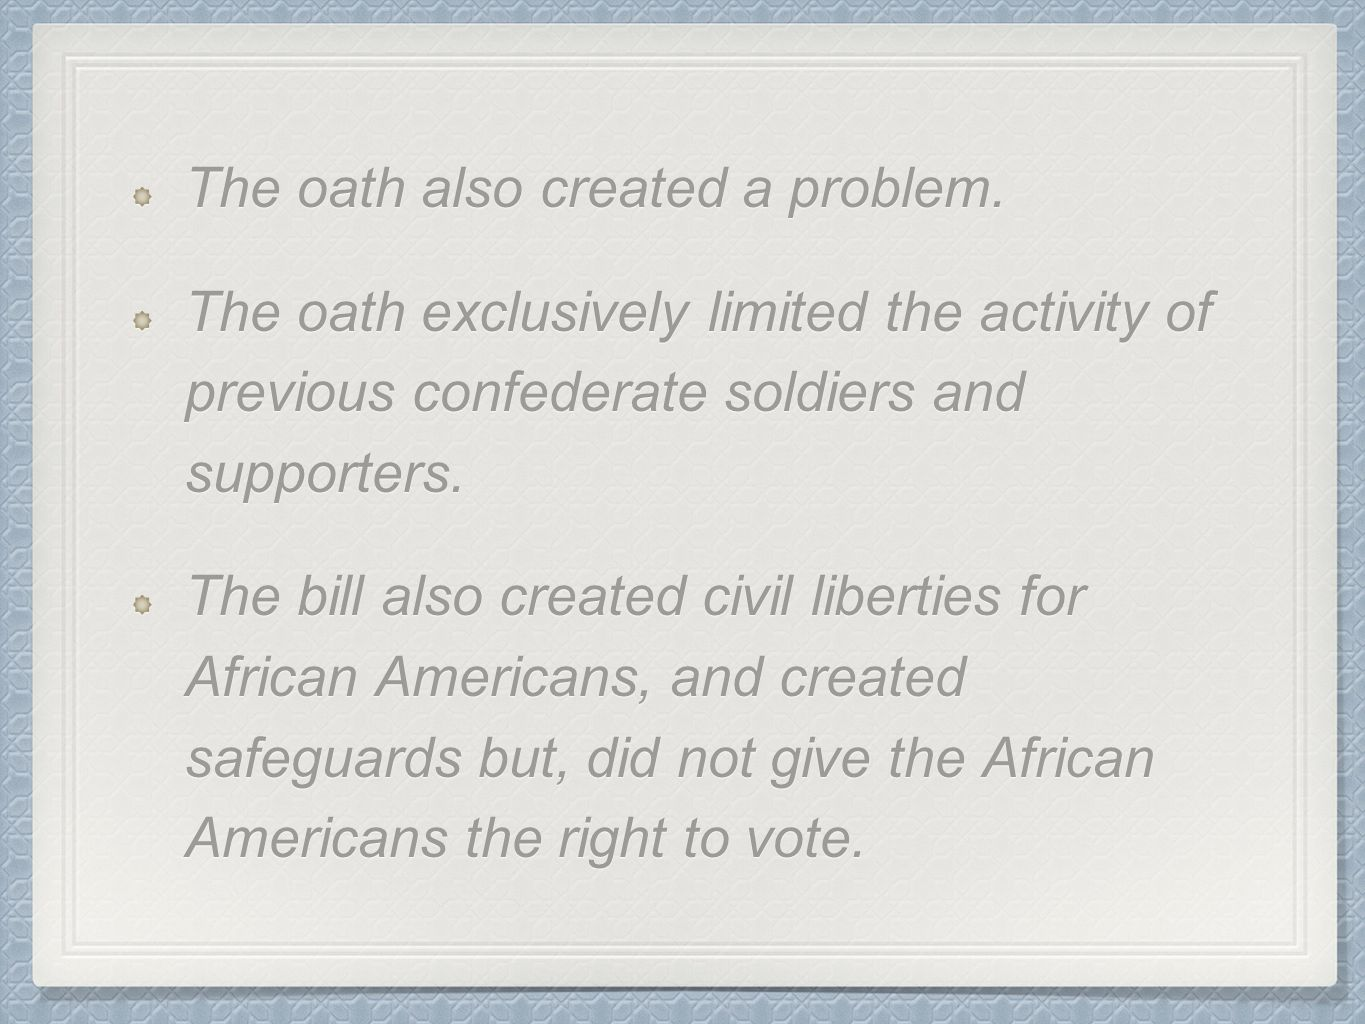 The oath also created a problem.